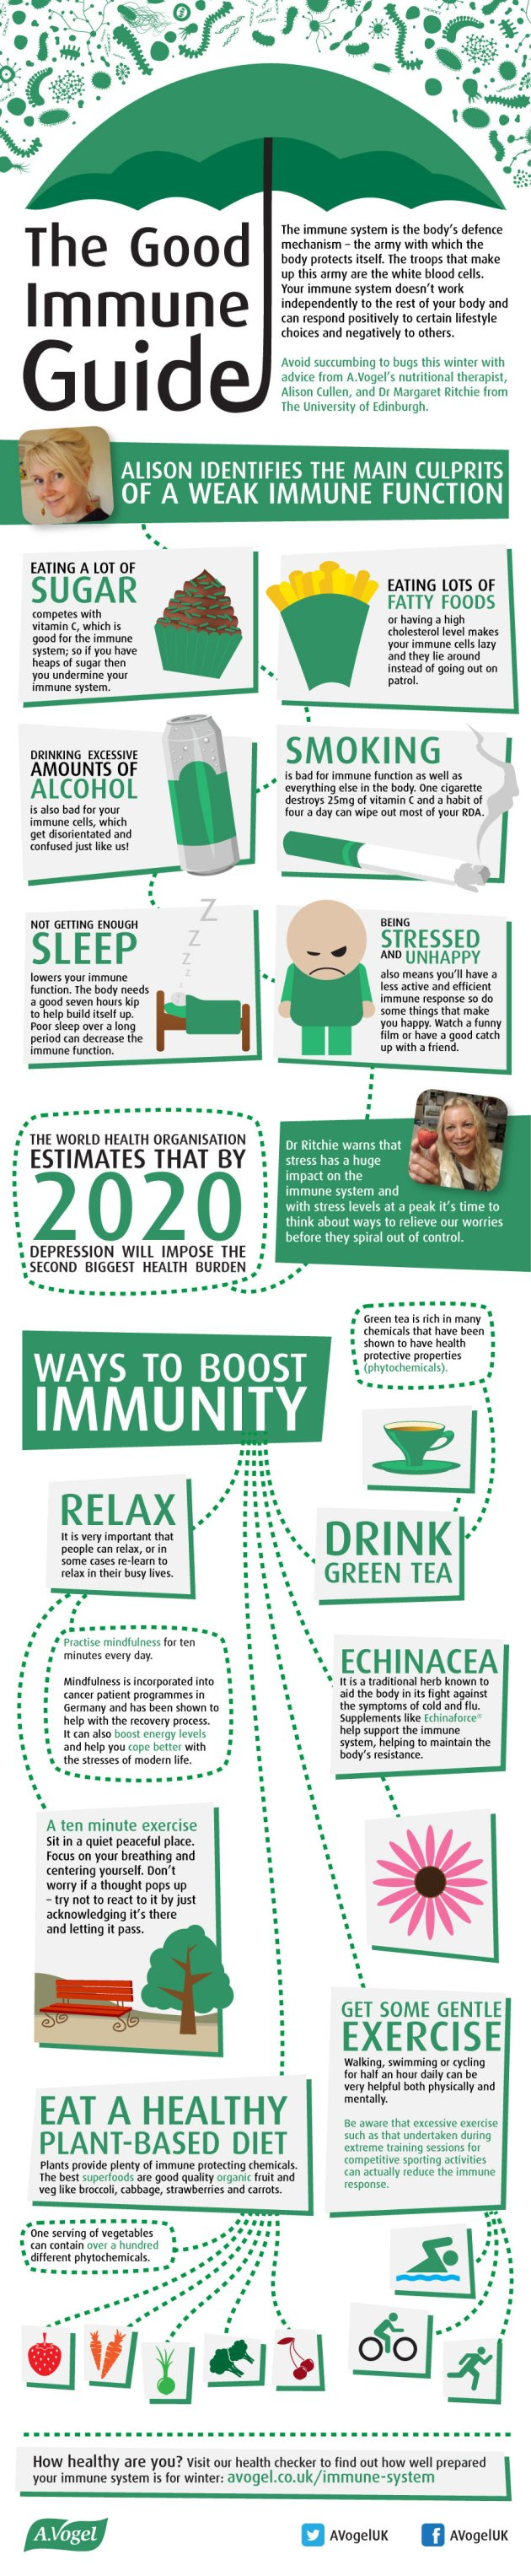 5 Tips To Boost Immunity Infographic